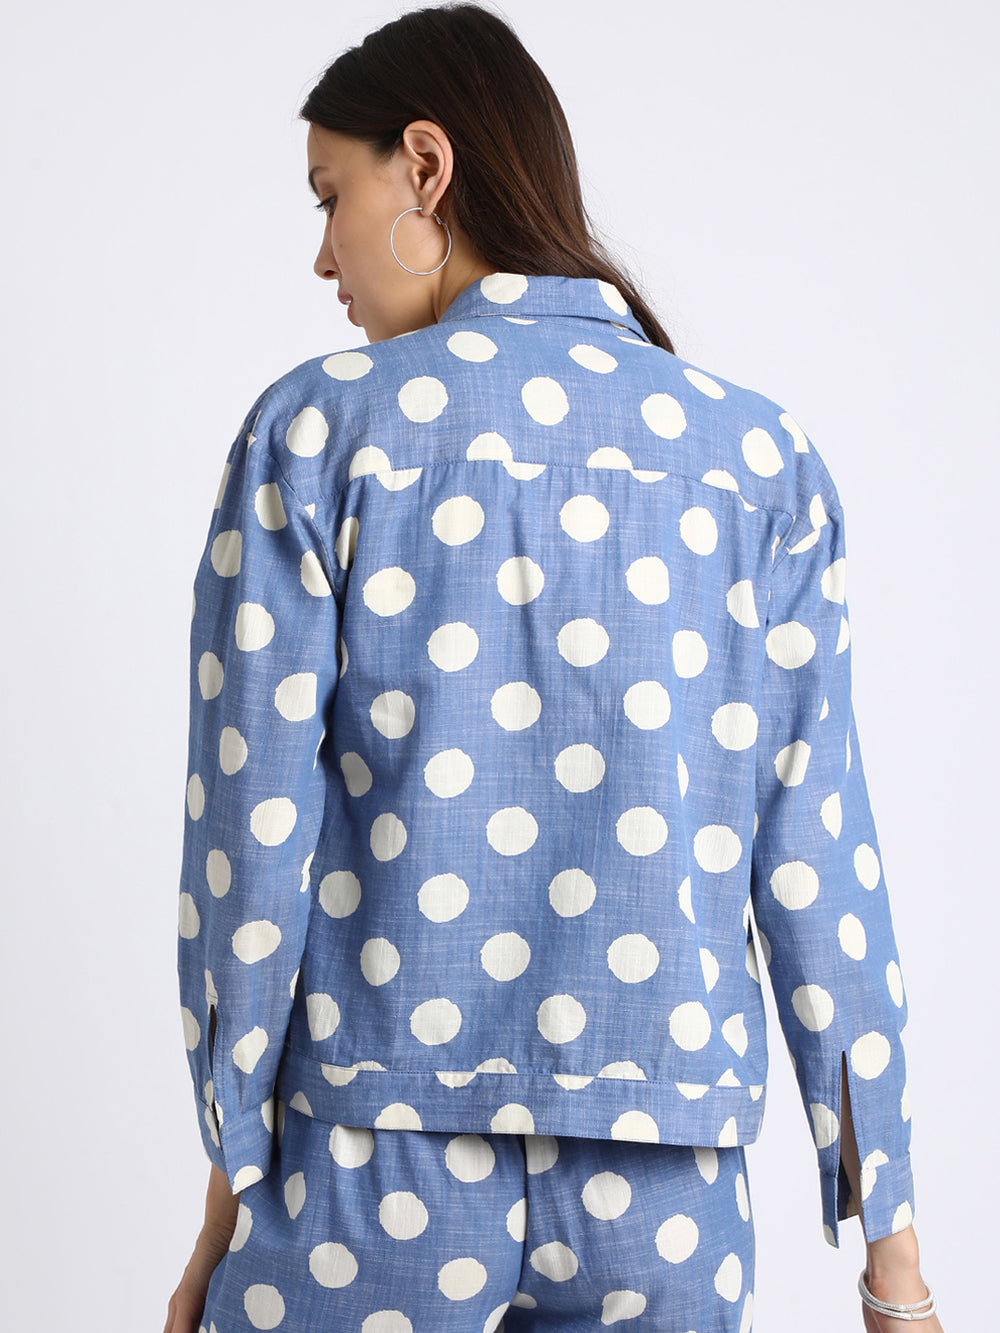 Besiva Women Blue & White Regular Fit Printed Casual Shacket